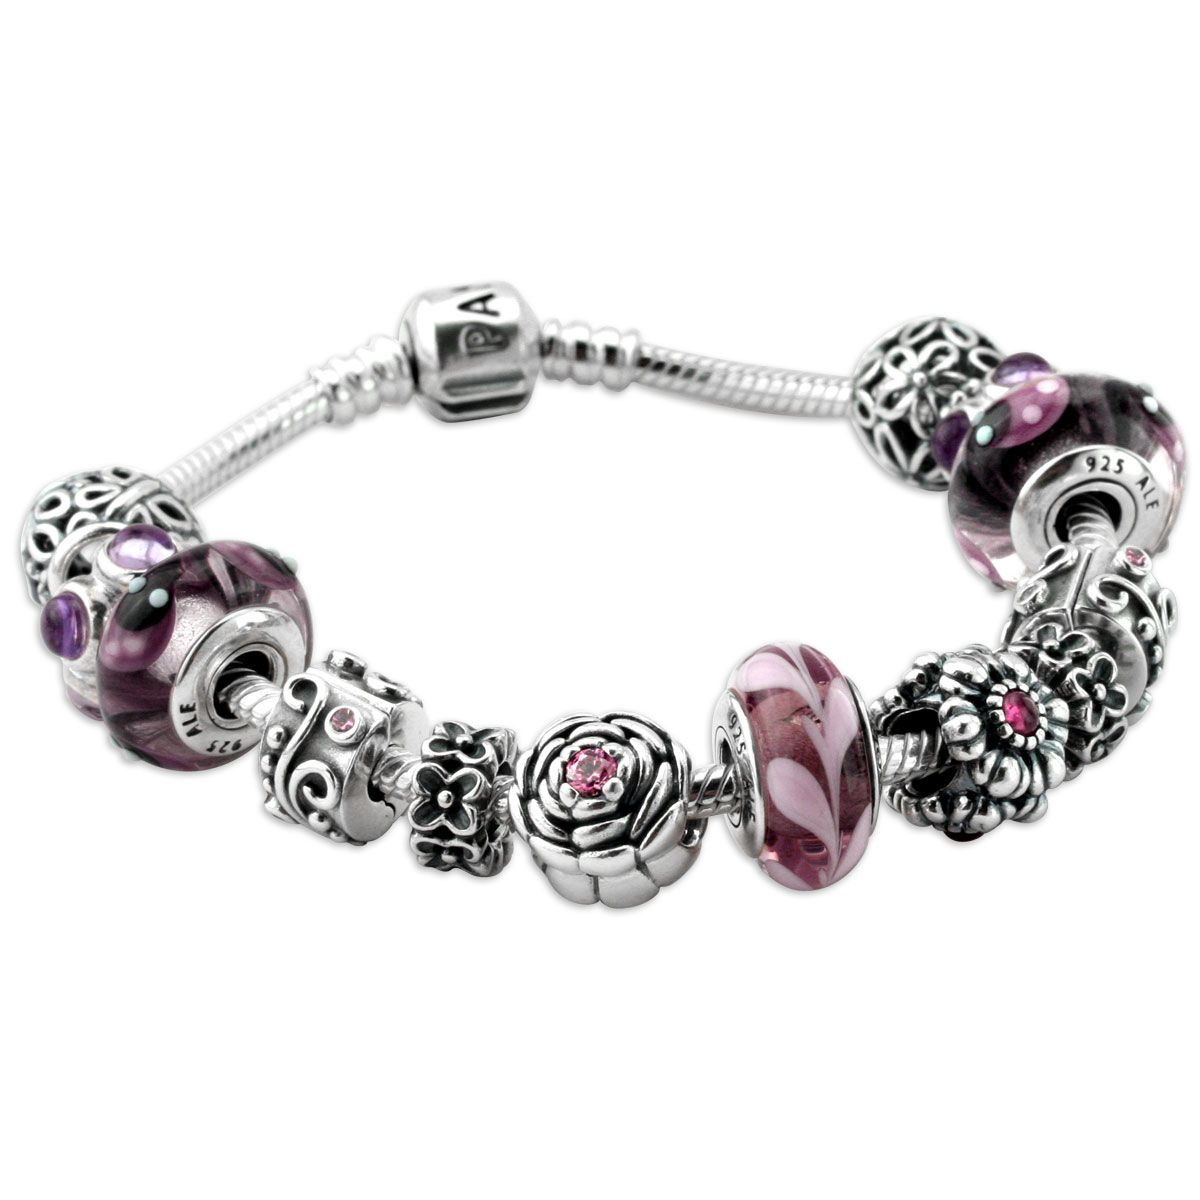 ccf007808 Very Pretty Pandora Bracelet, but way too expensive! $655   My Style ...